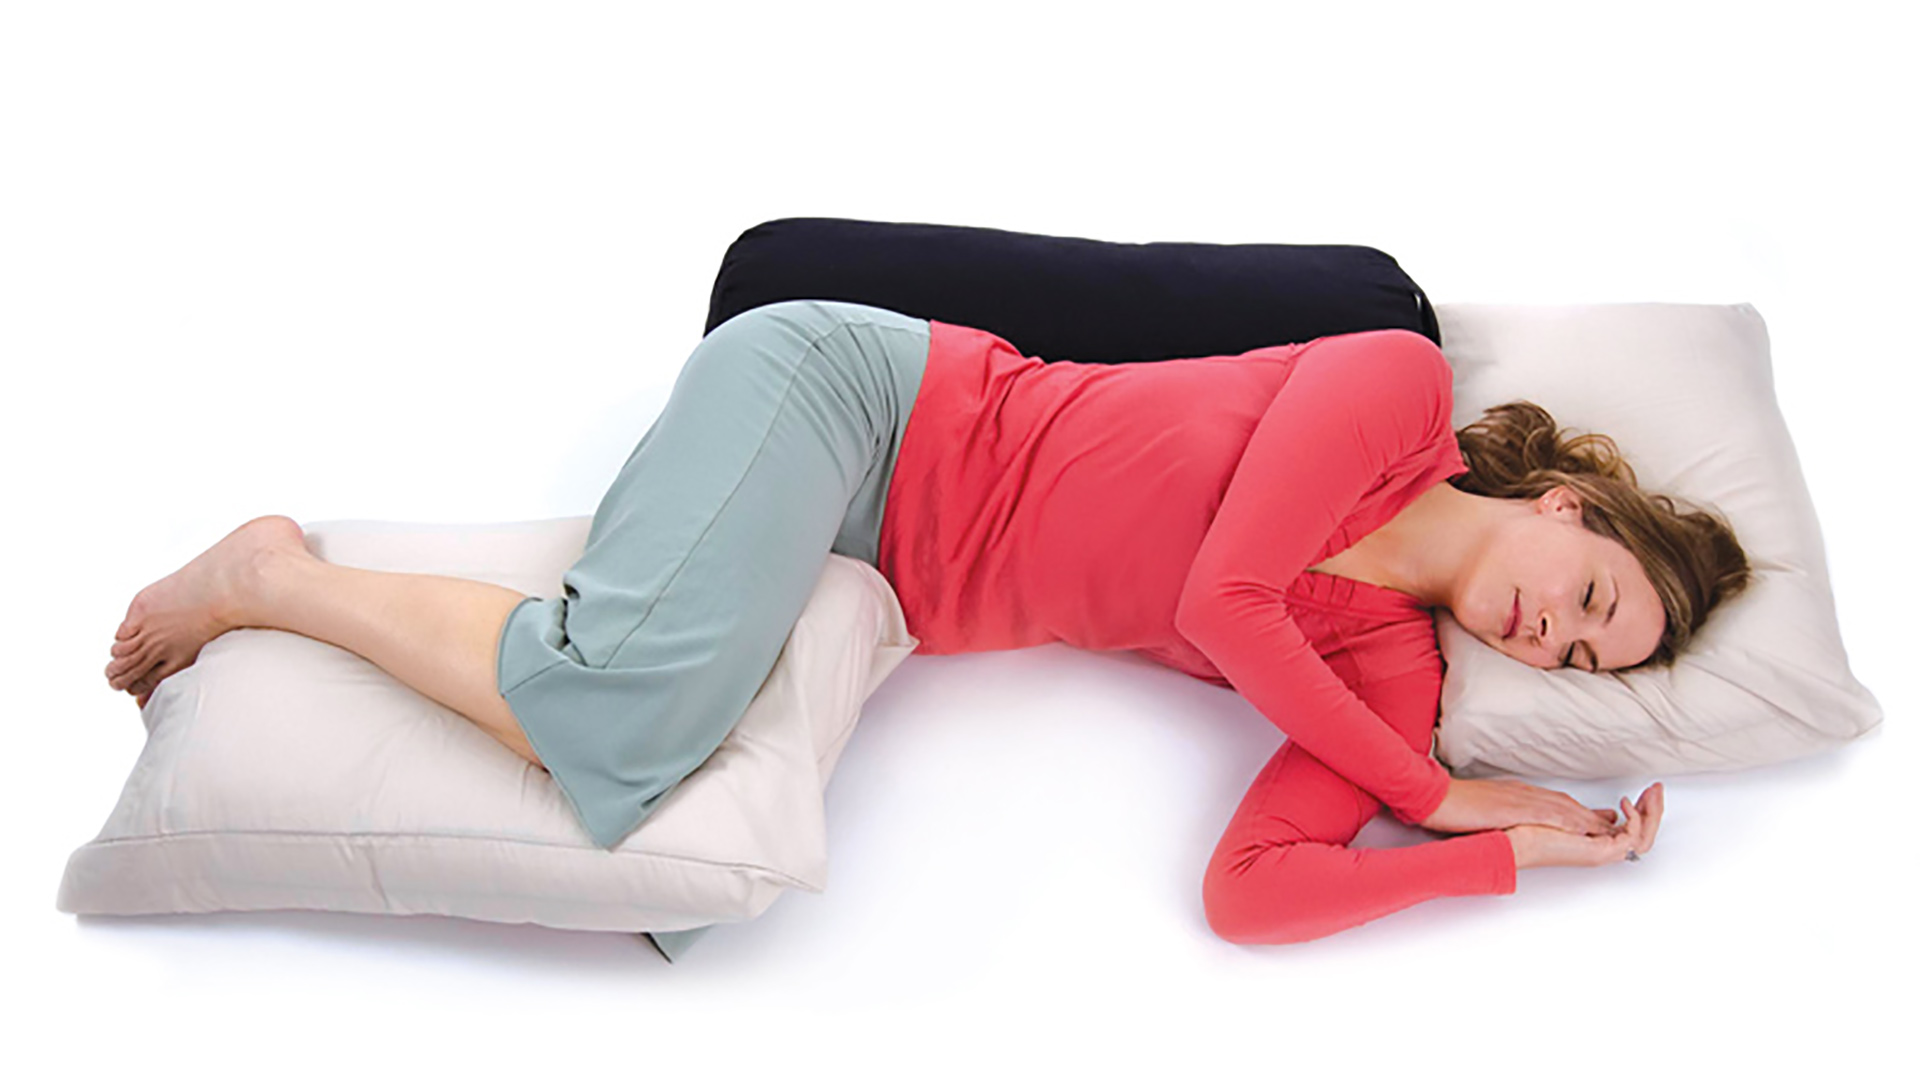 Restorative Yoga For Chronic Pain